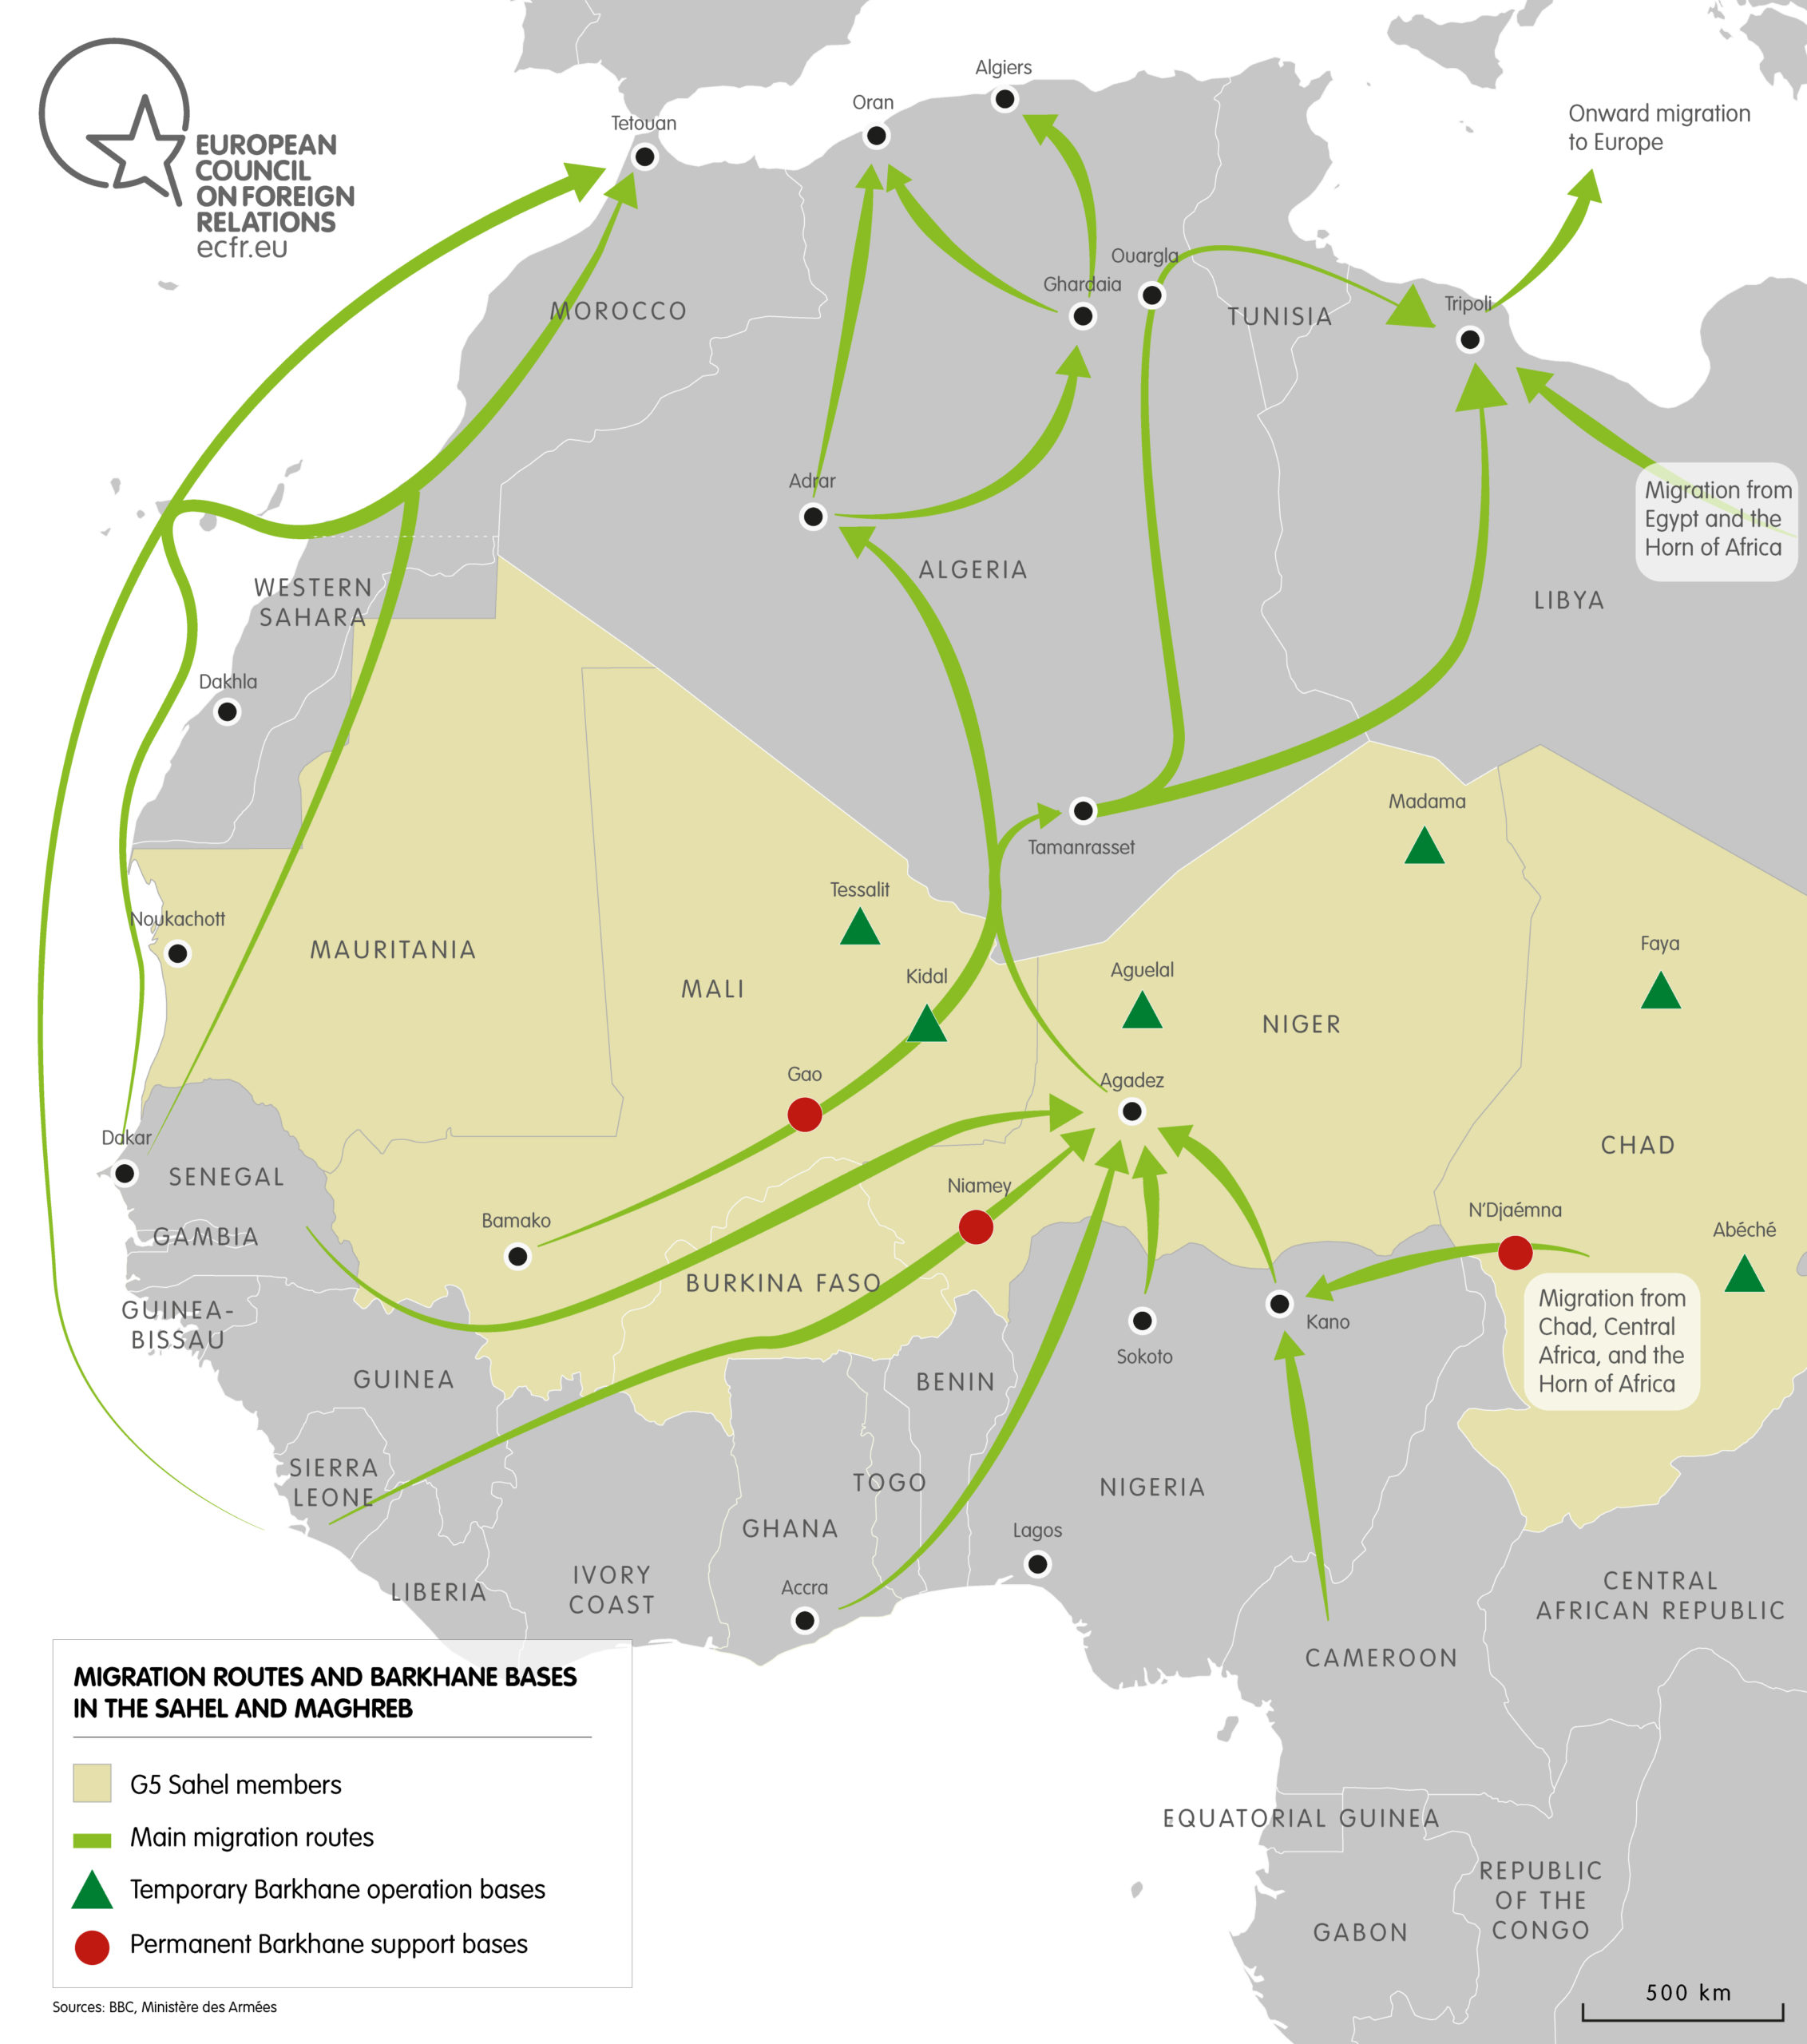 migration routes and barkhane bases in the sahel and maghreb